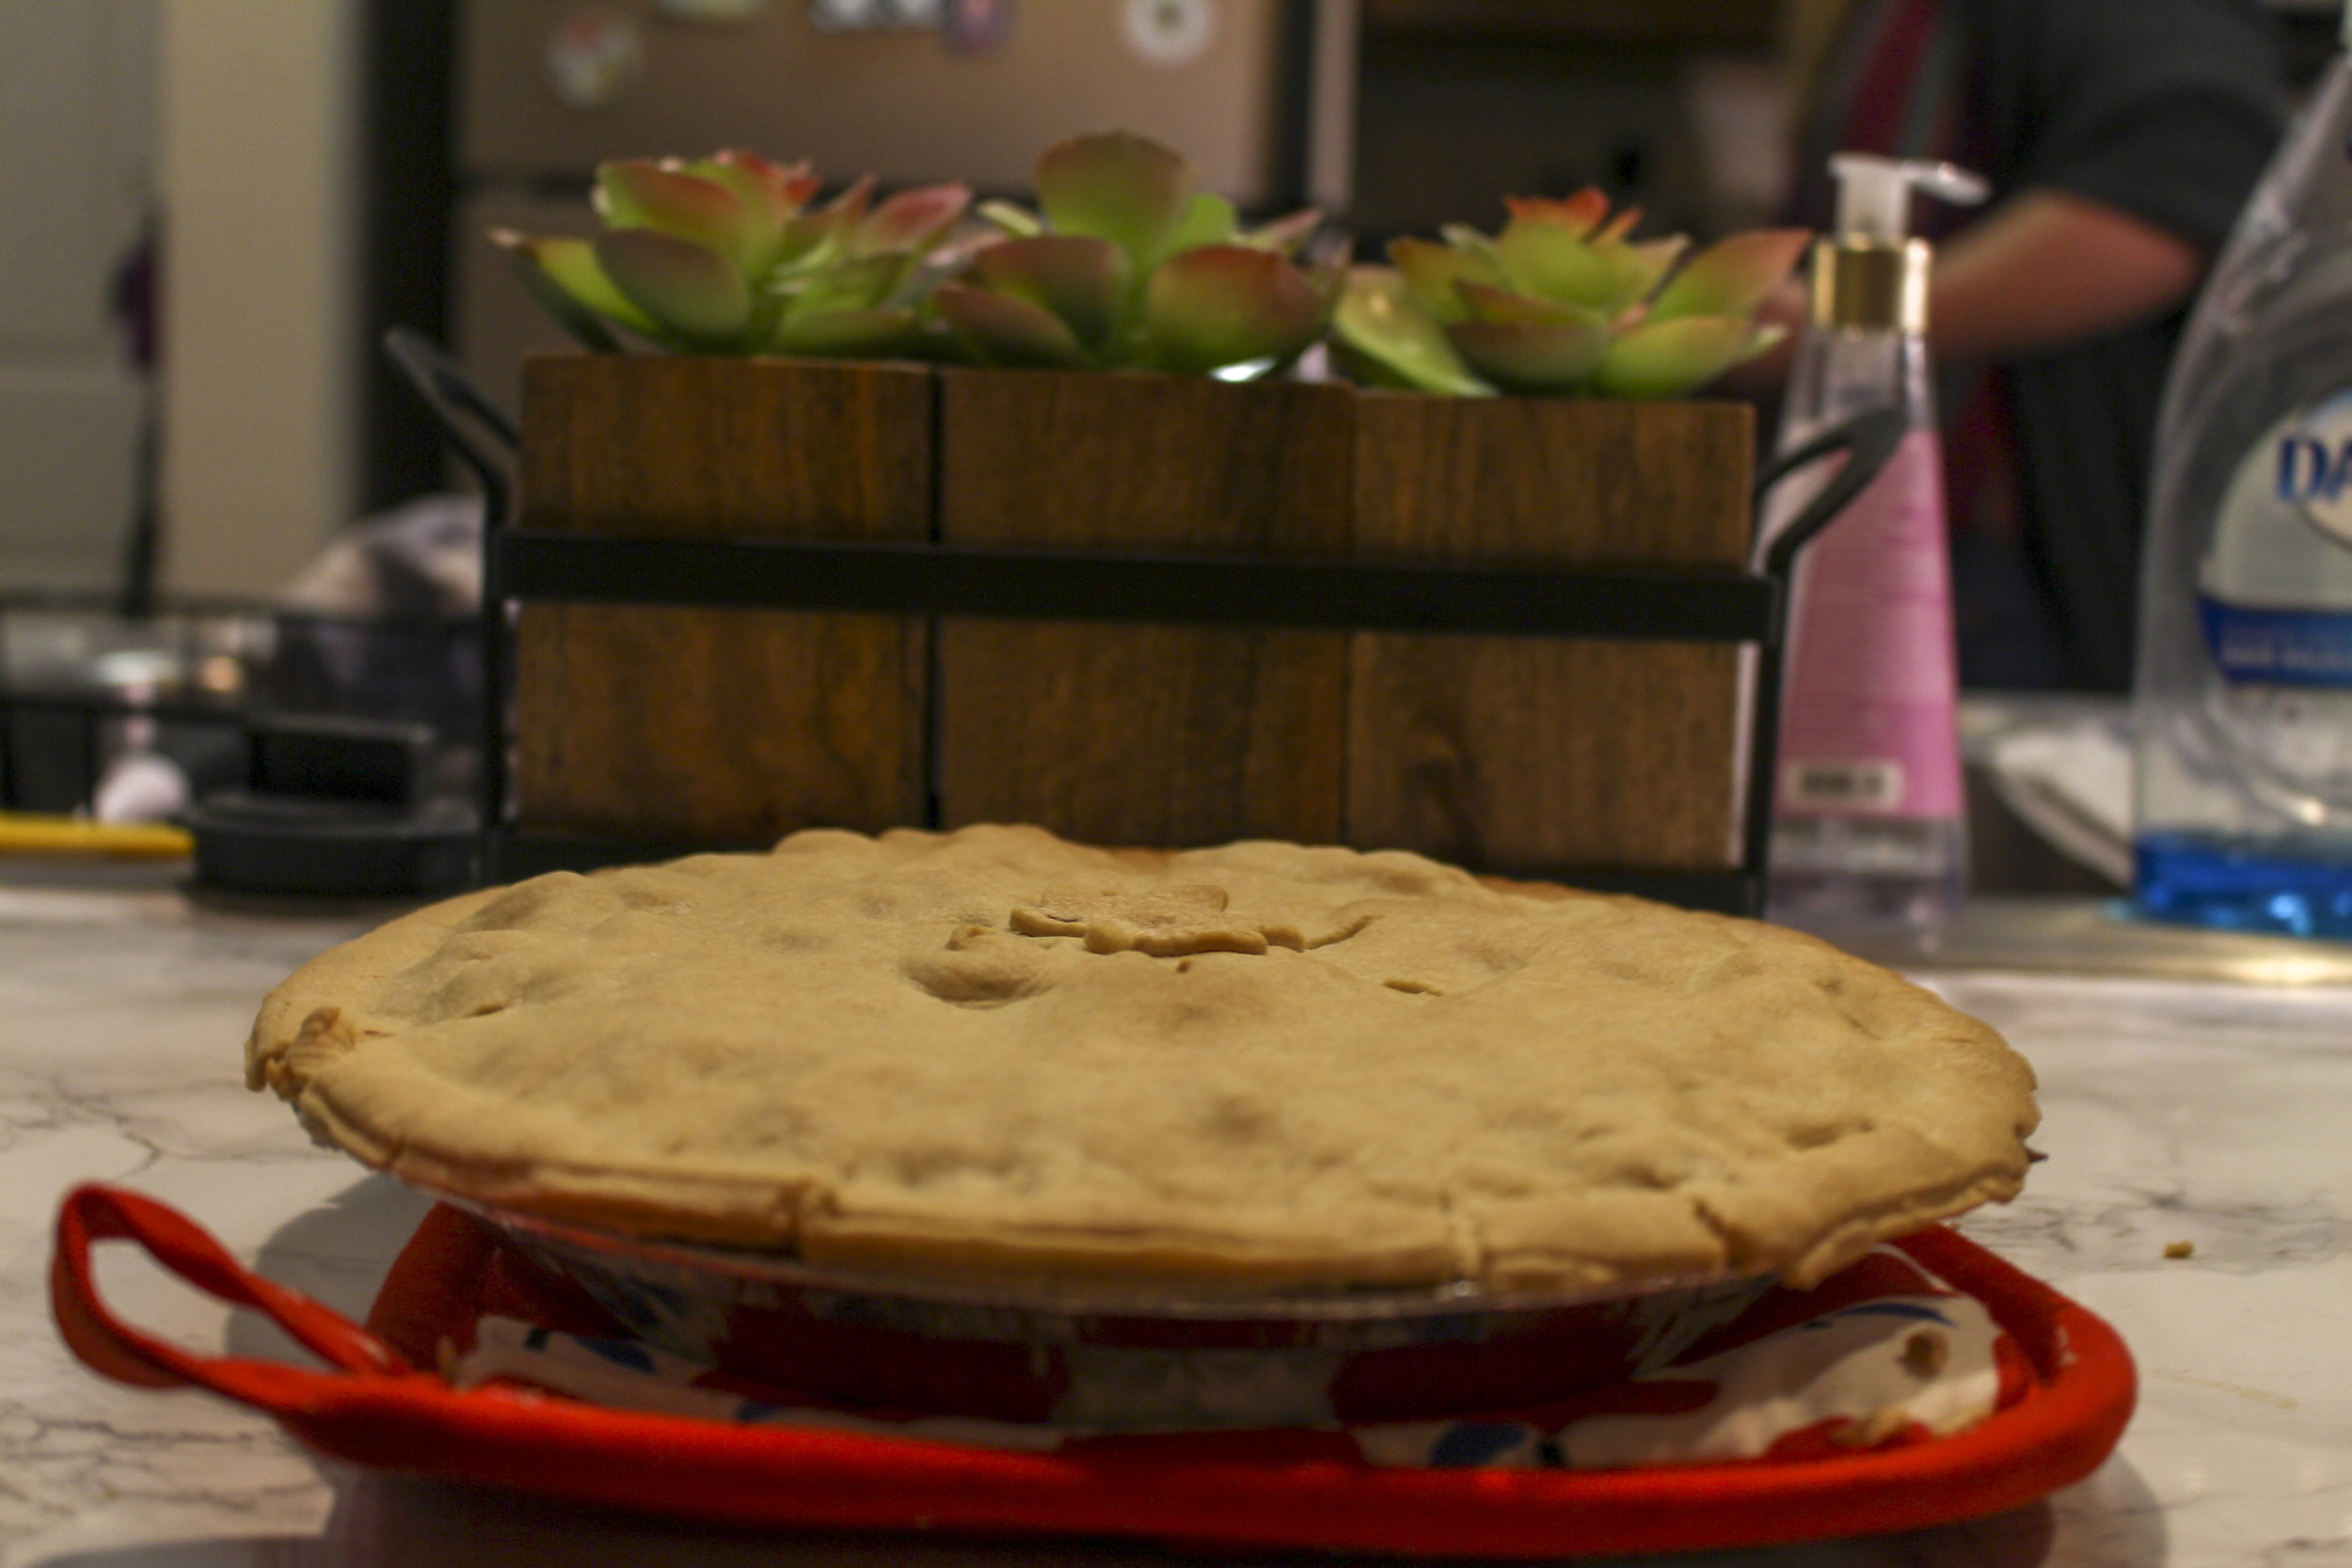 While most pot pie recipes are labor-intensive, this recipe is simple and delicious.